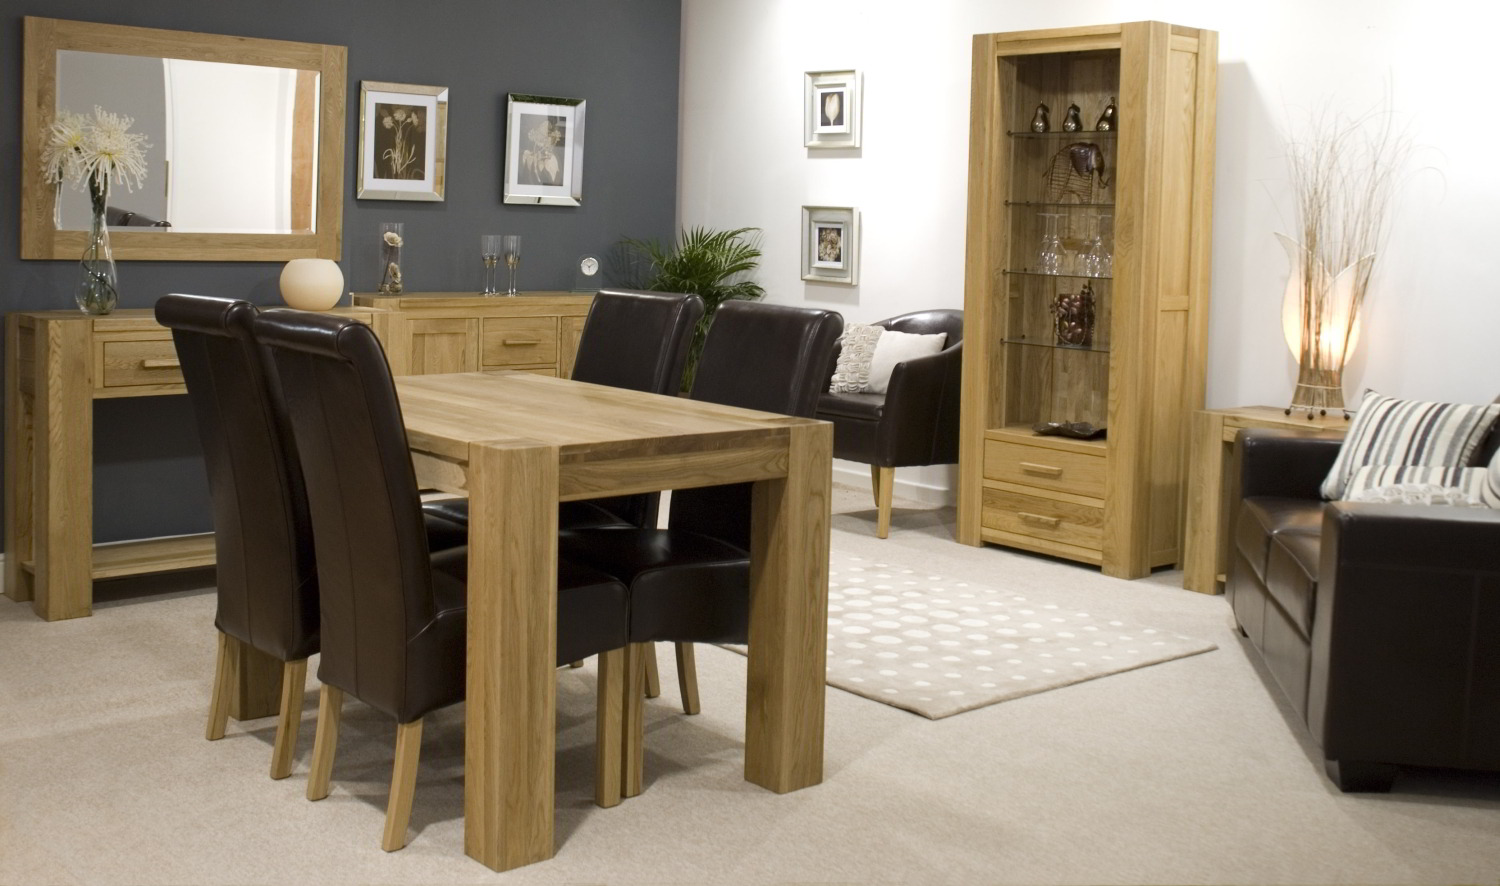 Pemberton solid modern oak hallway furniture console hall for Room with furniture